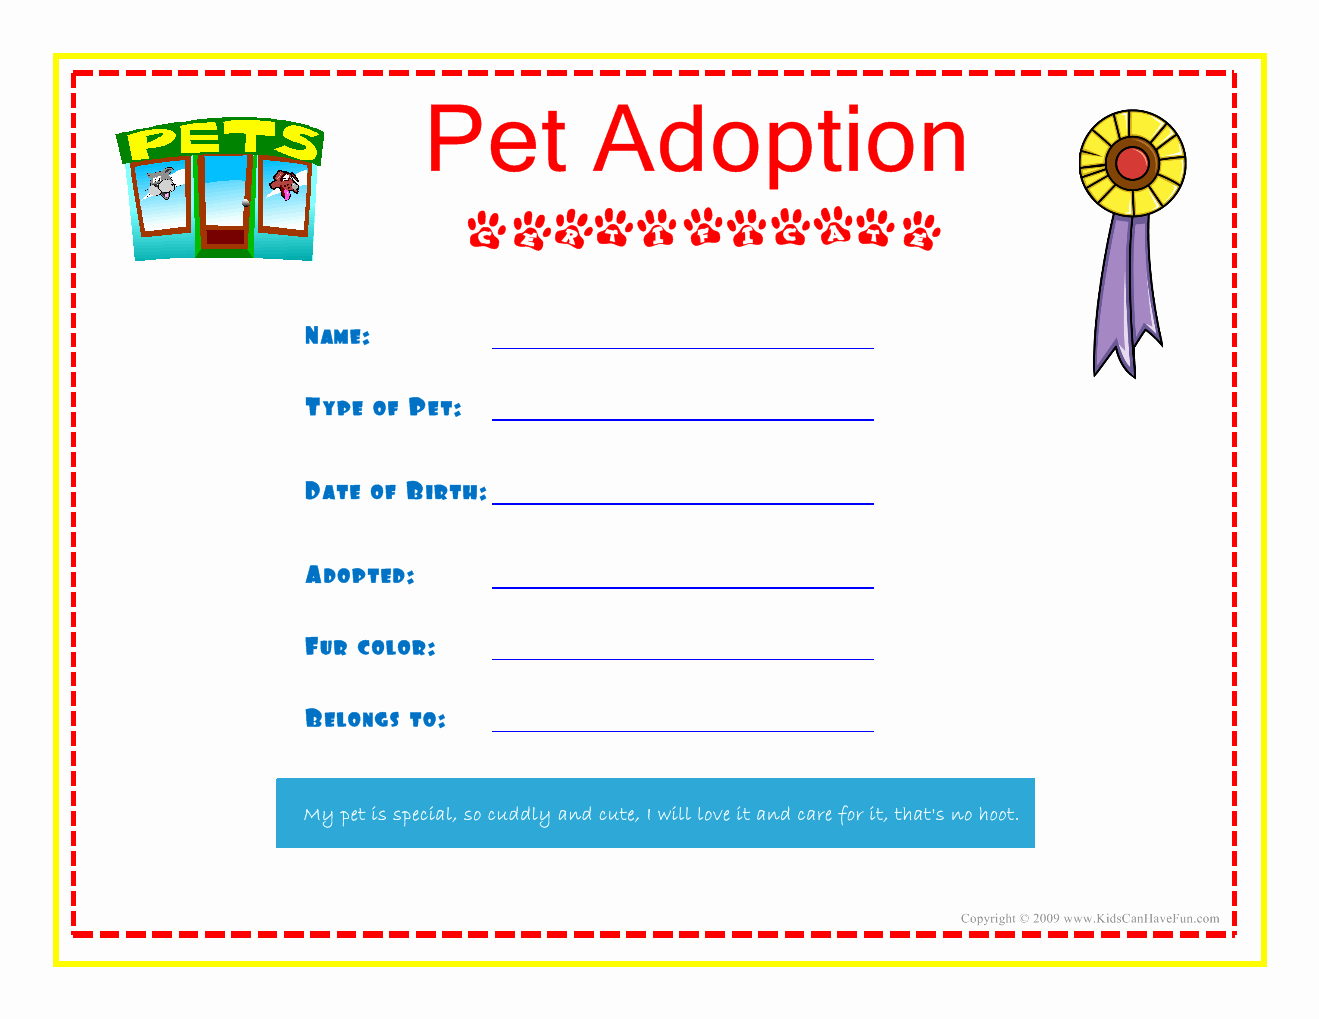 Free Printable Dog Birth Certificate Elegant Pet Adoption Certificate for the Kids to Fill Out About